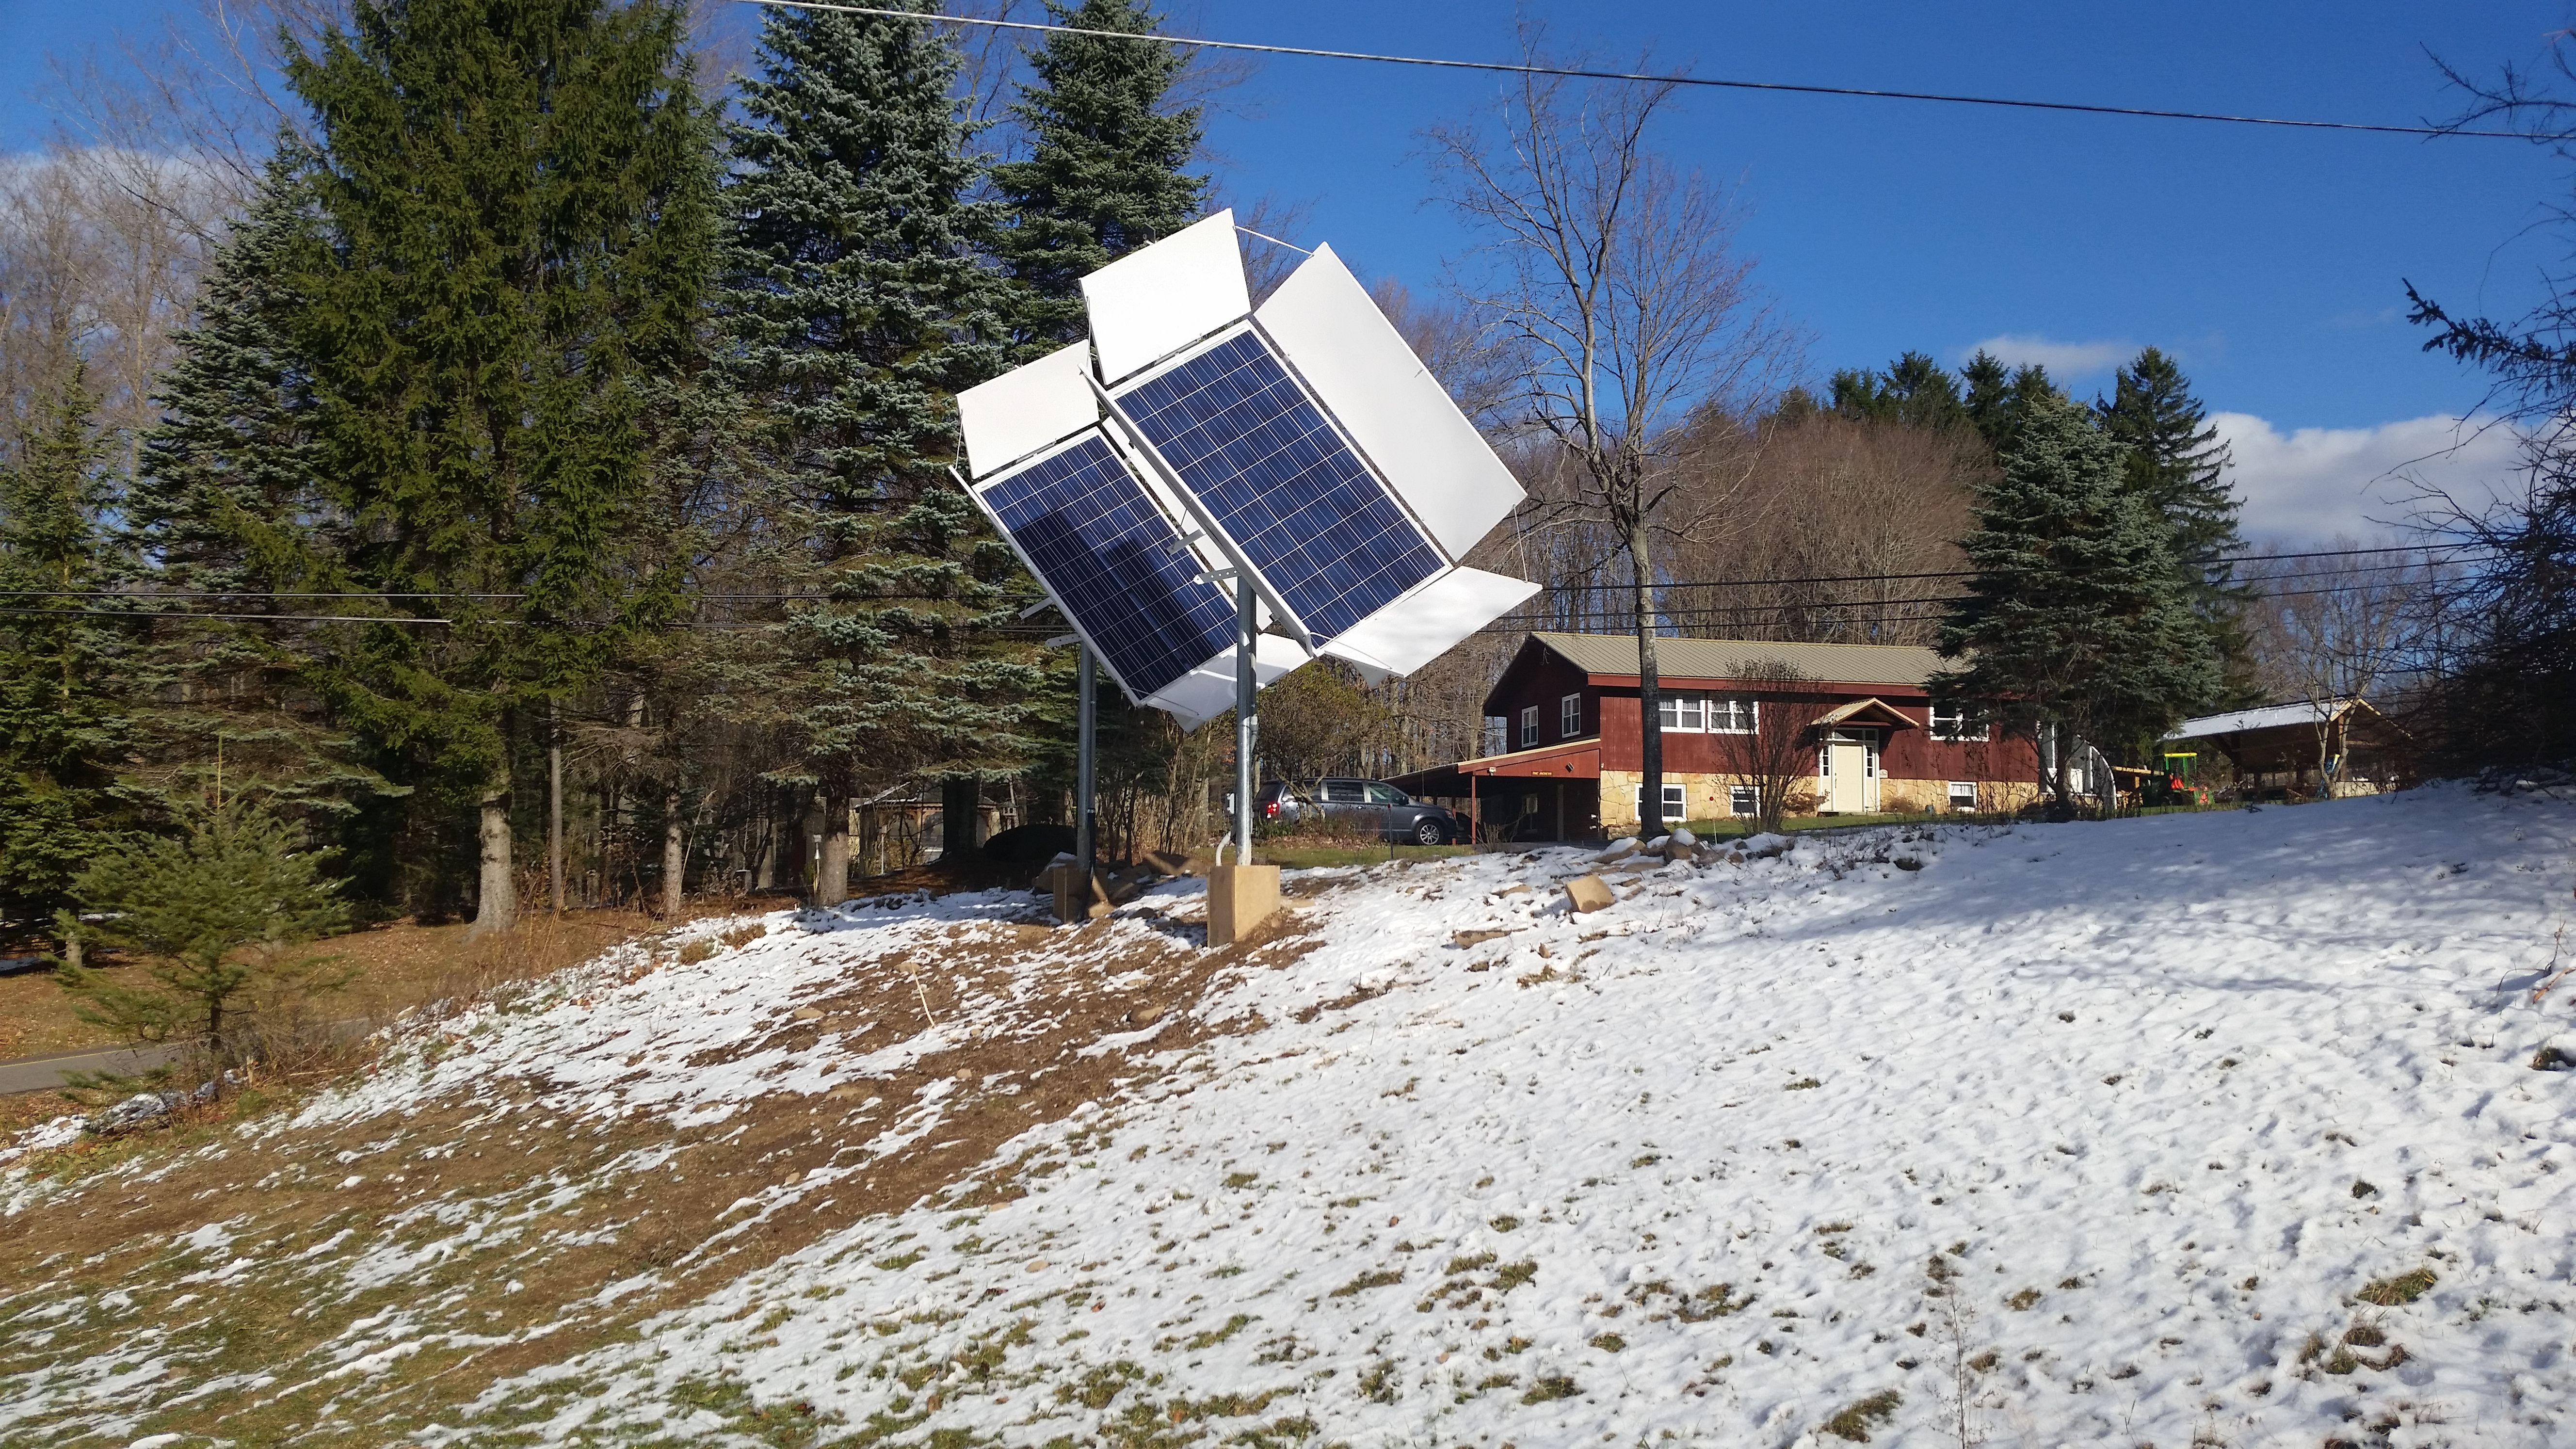 Residential Ground Mount Solar Systems That Tracks The Sun Solar Solar Tracker Sustainable Energy